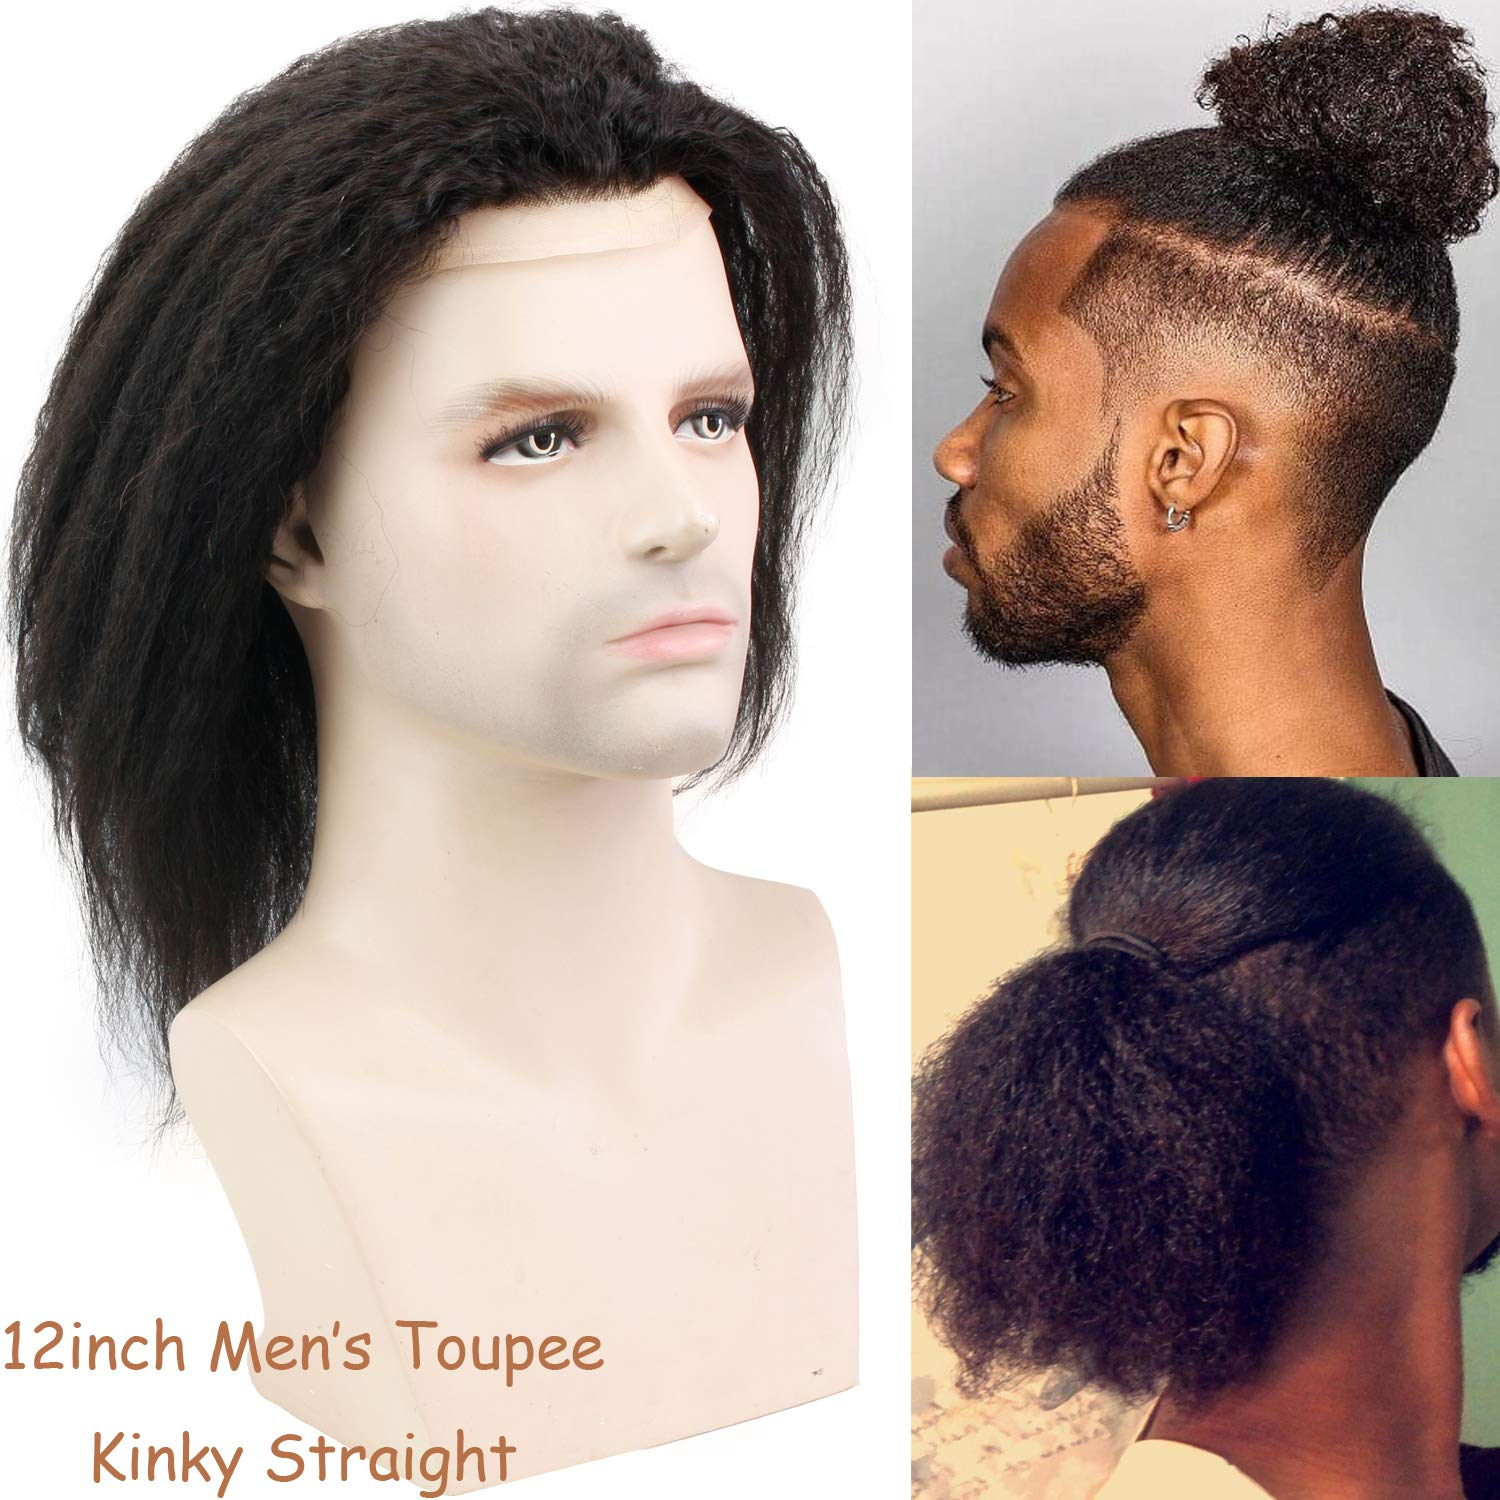 "12"" Long Kinky Straight Human Hair Replacement For Men Stock Toupee Mono Lace And PU Around With Swiss Lace Front 10x8""Base Size"